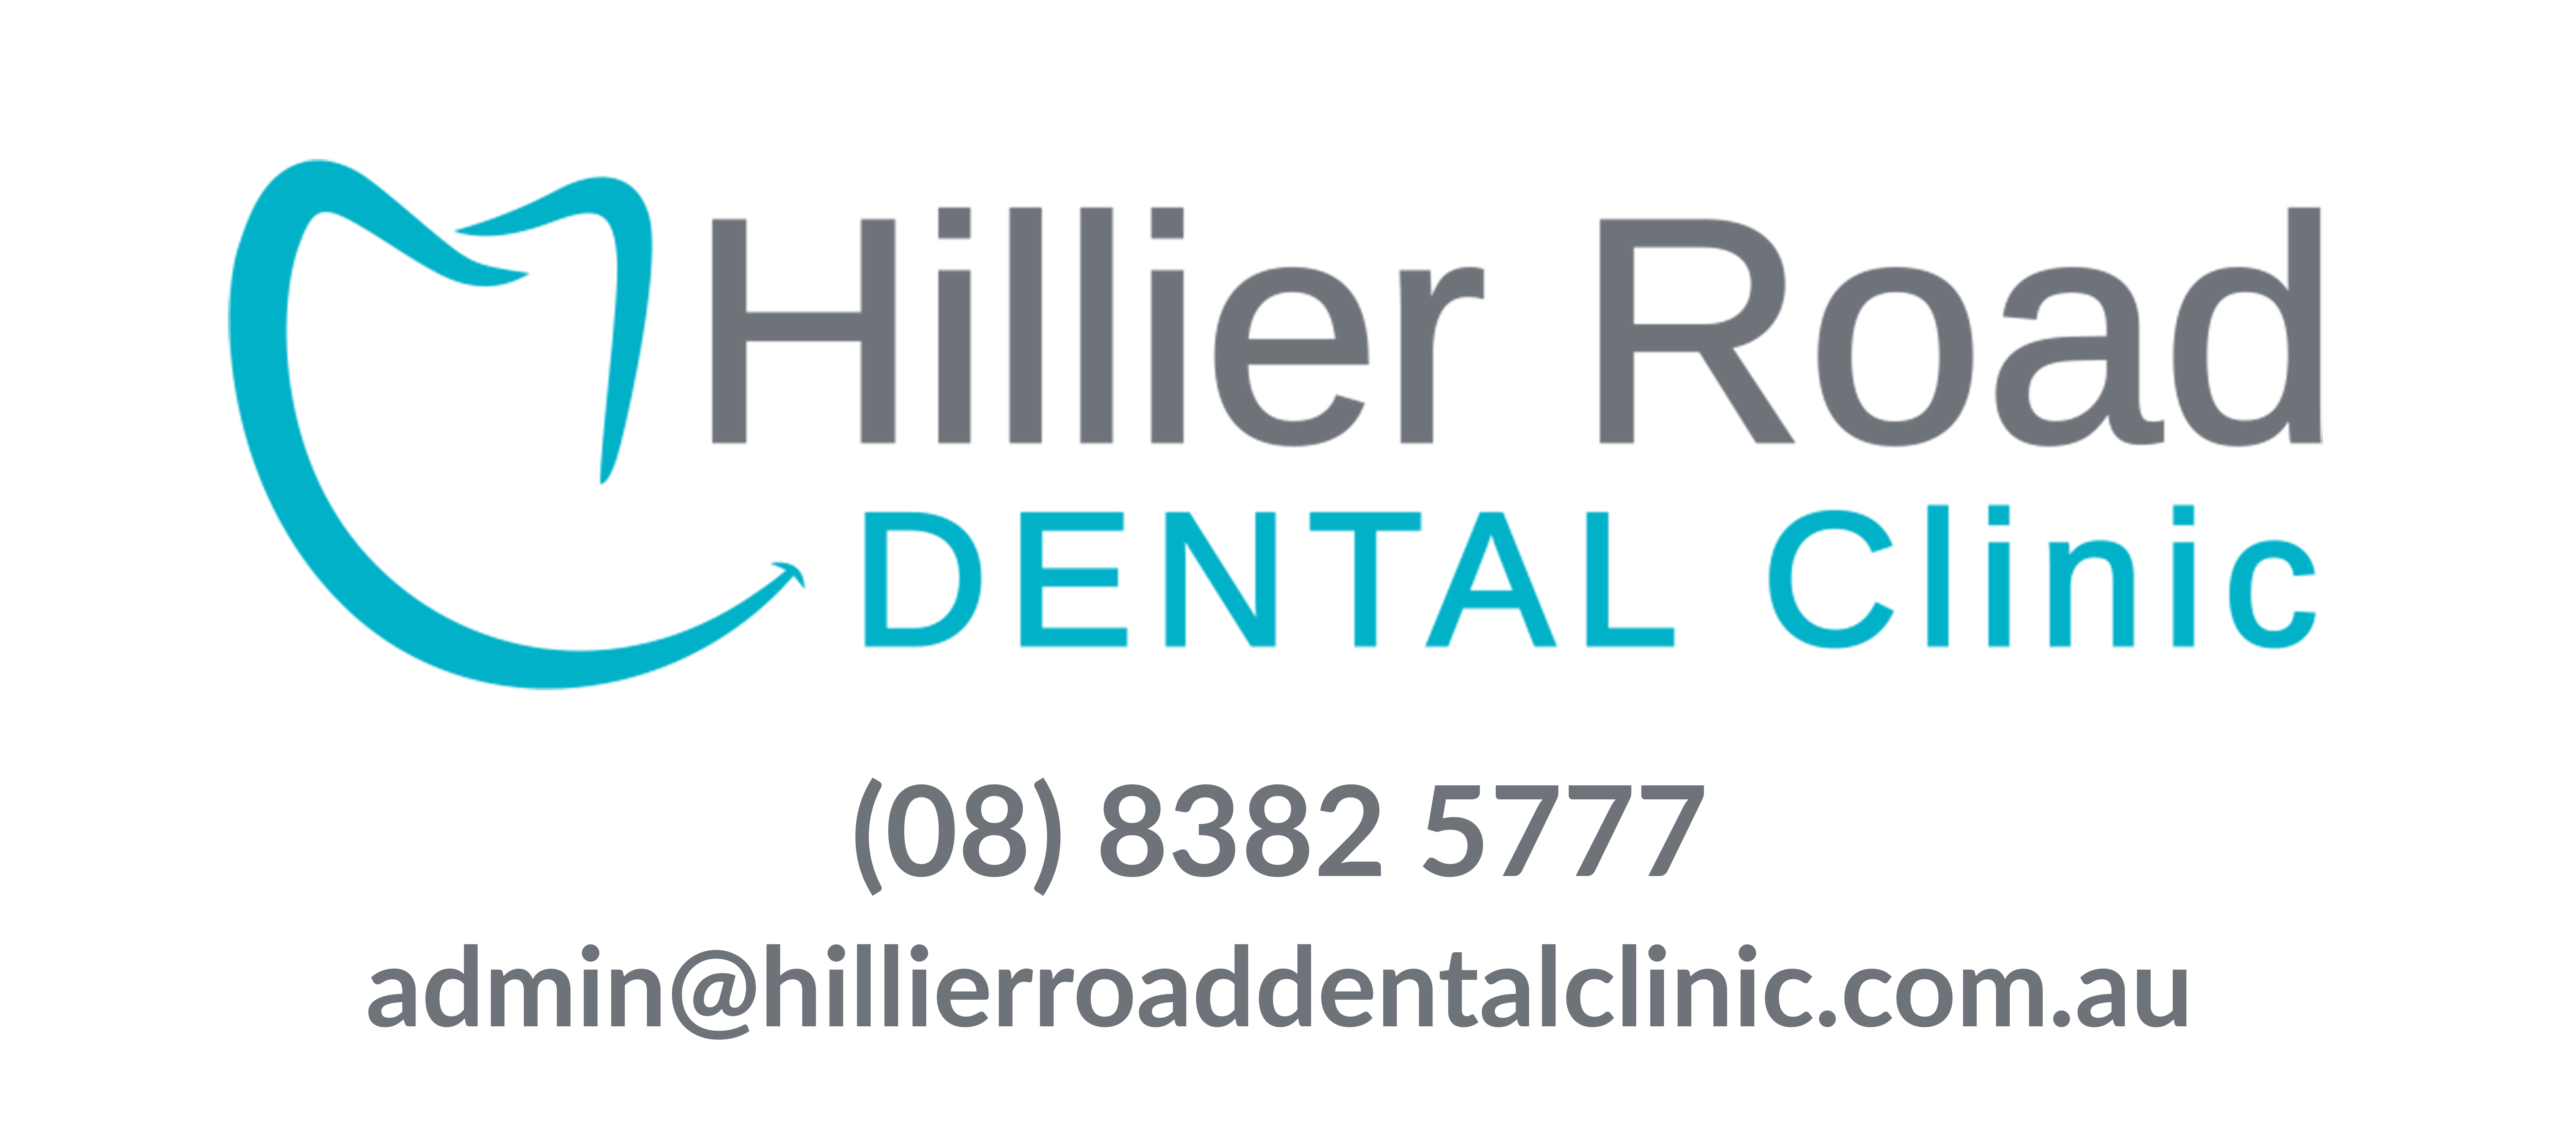 Hillier Road Dental